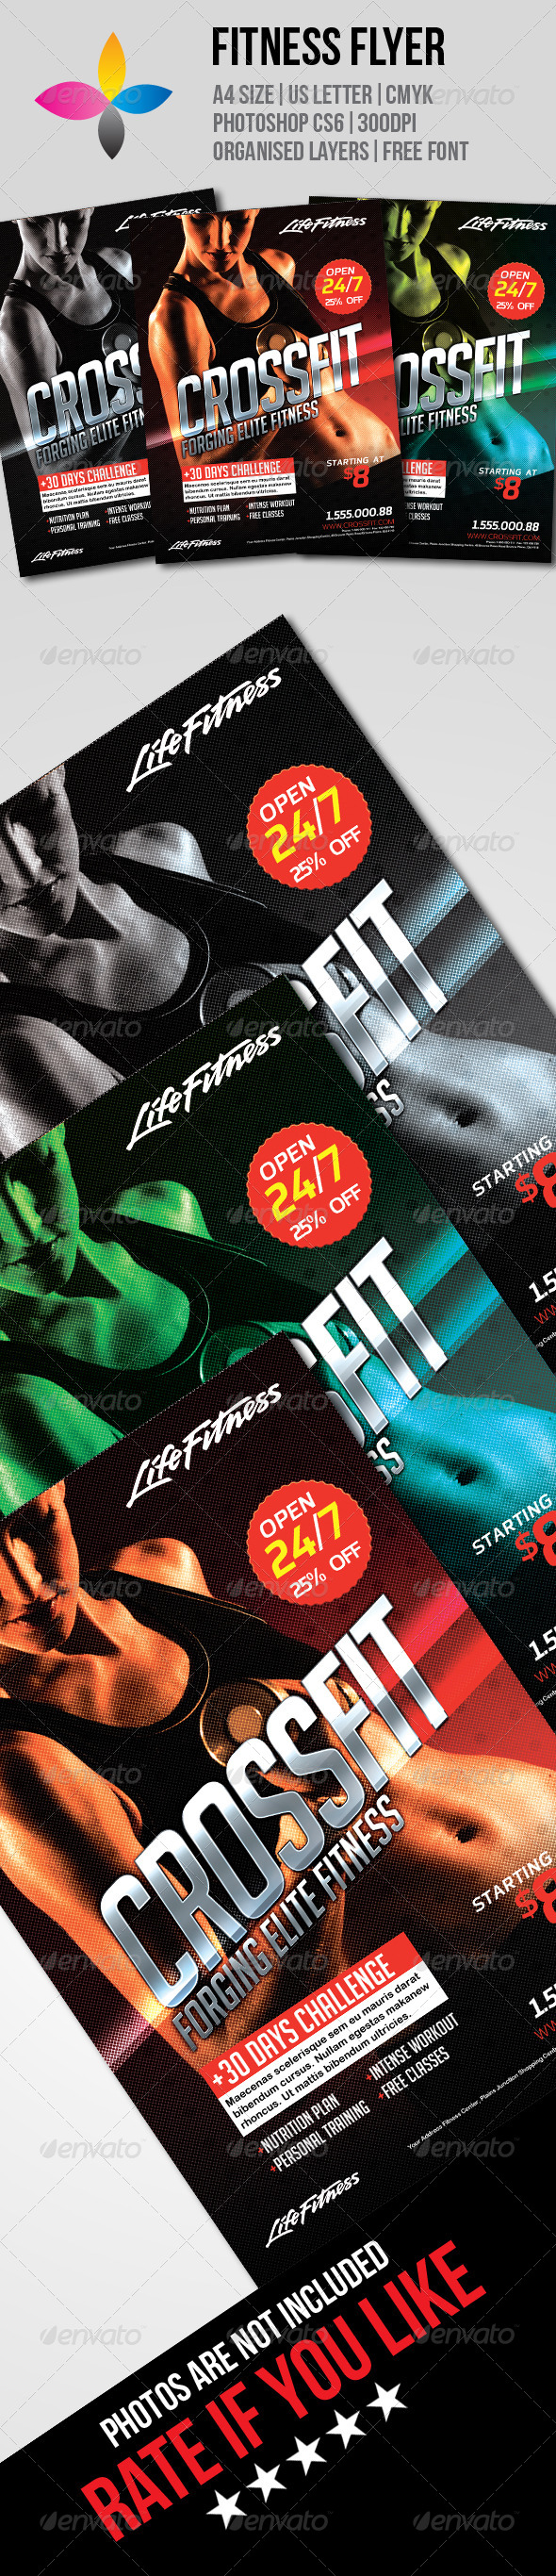 GraphicRiver Fitness Flyer 7751705